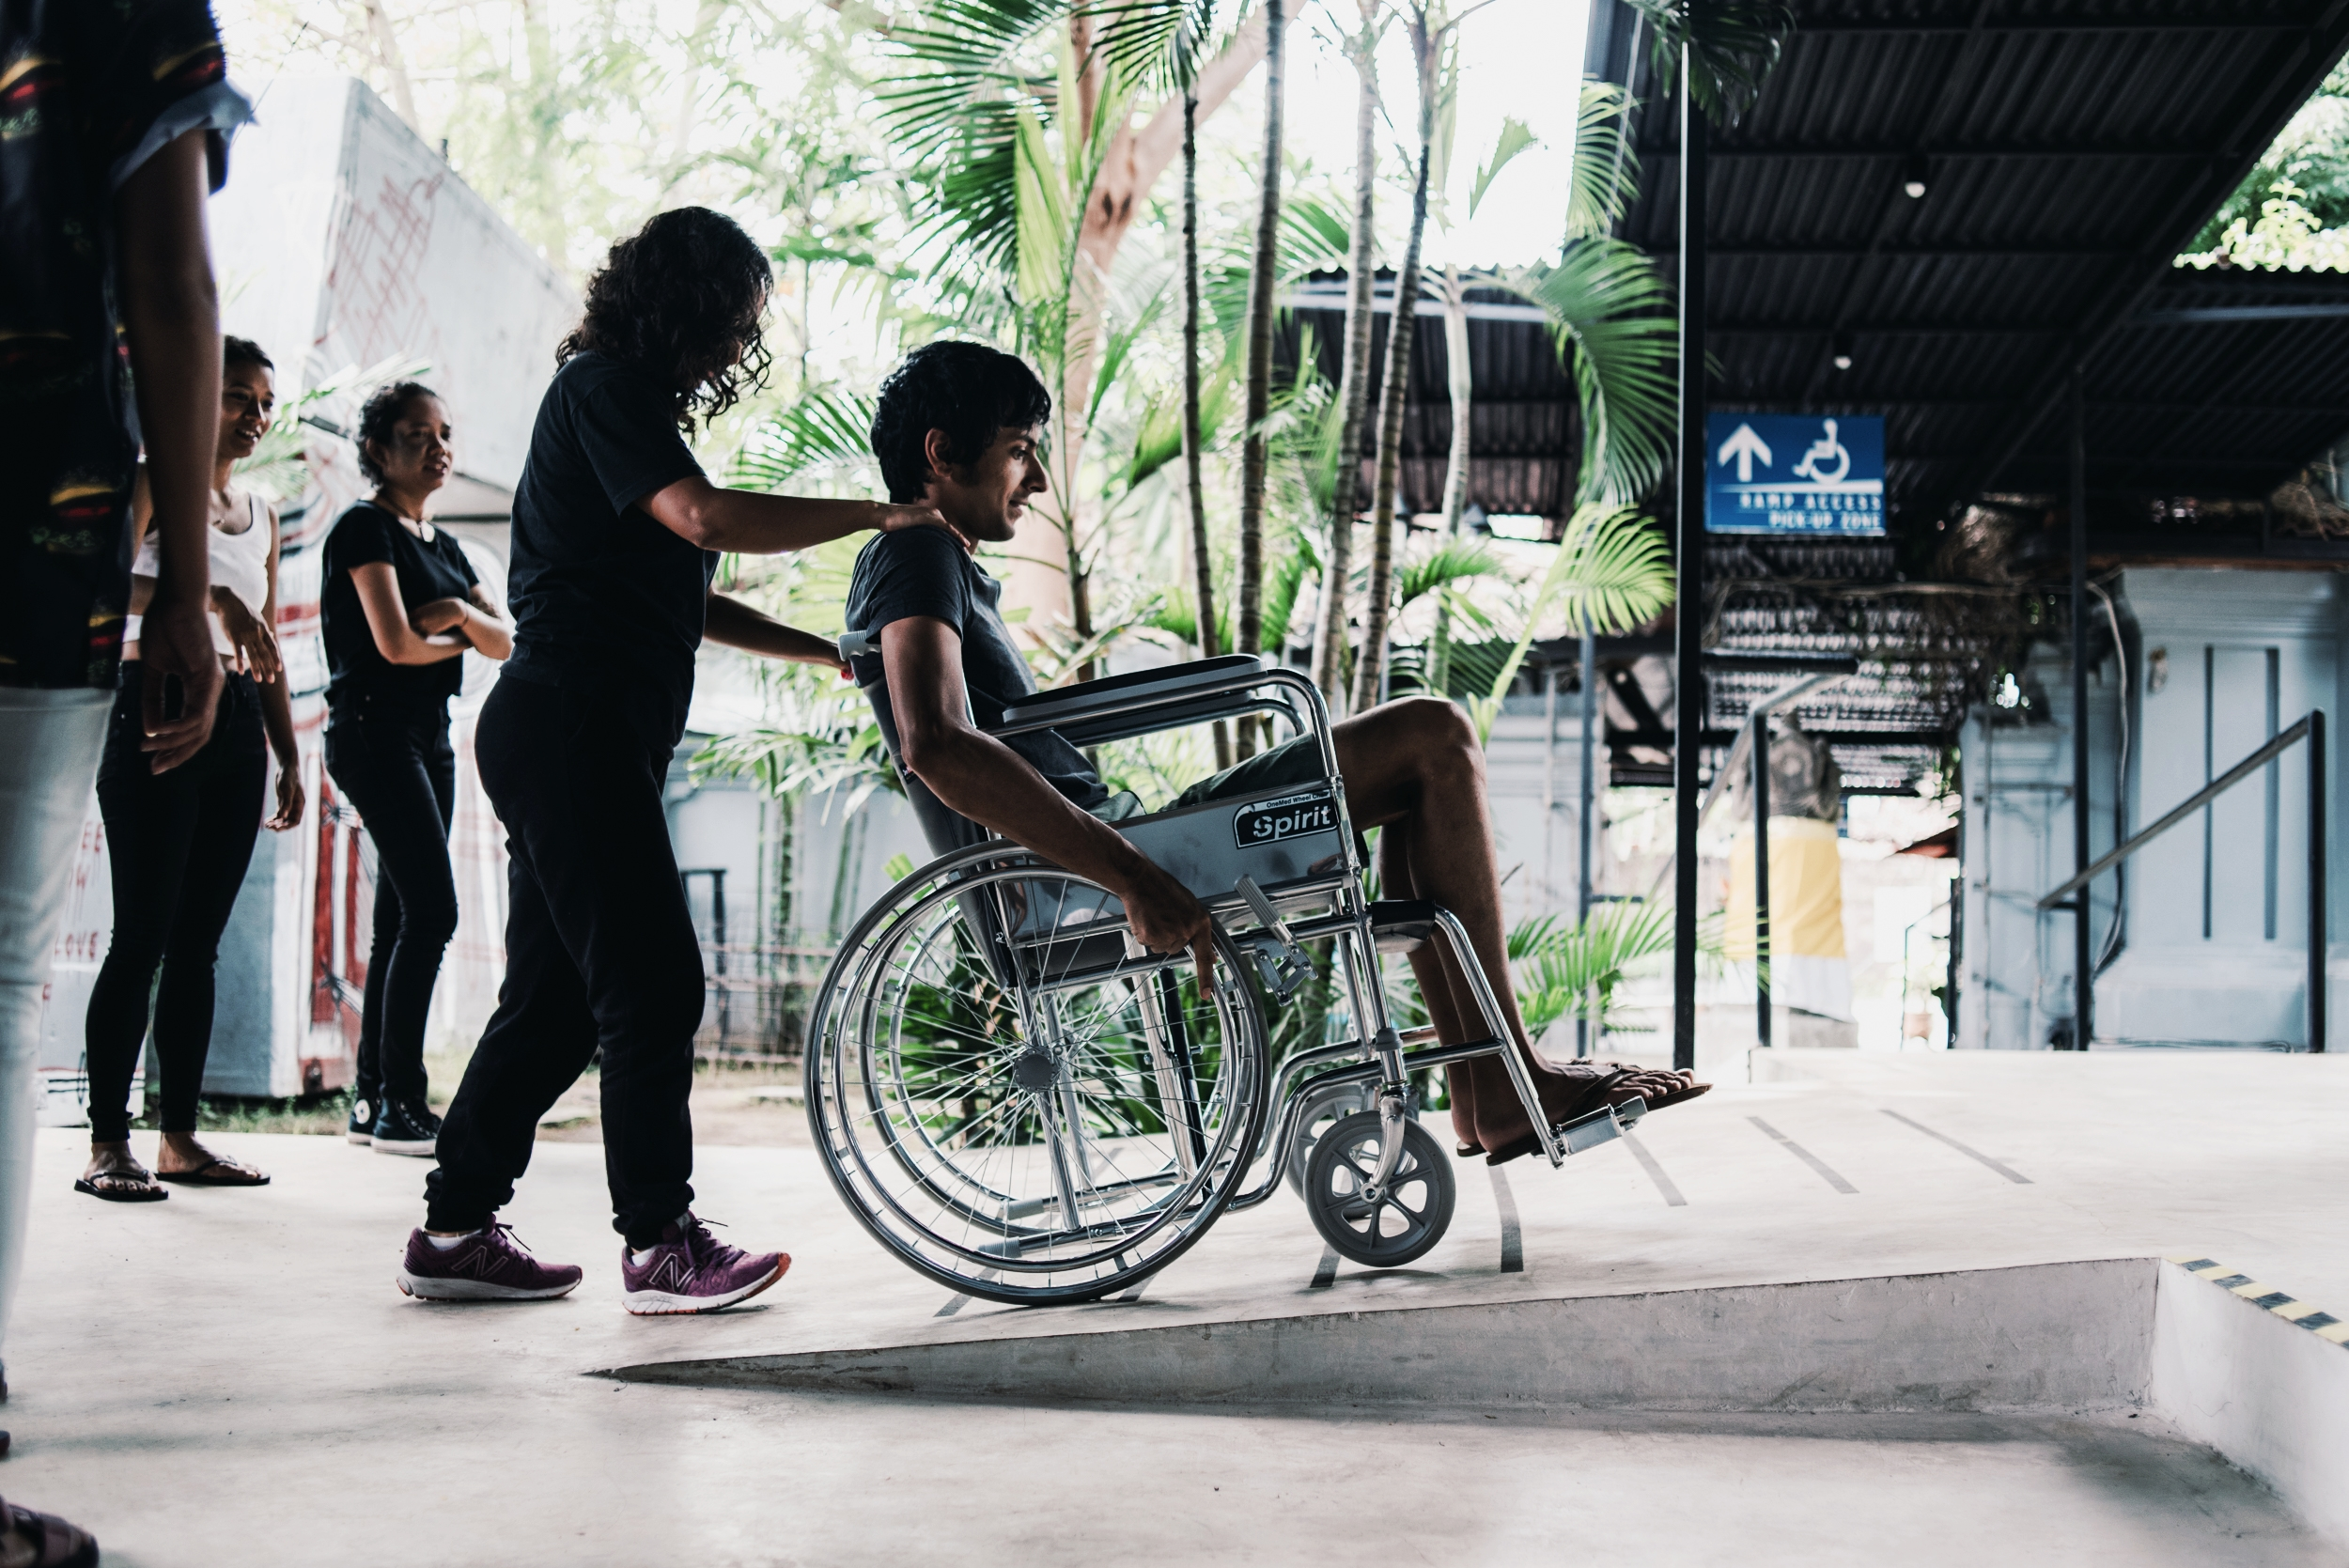 Research.  Working with Indonesian research staff to pilot testing protocols to evaluate wheelchair usage in Bali, Indonesia.